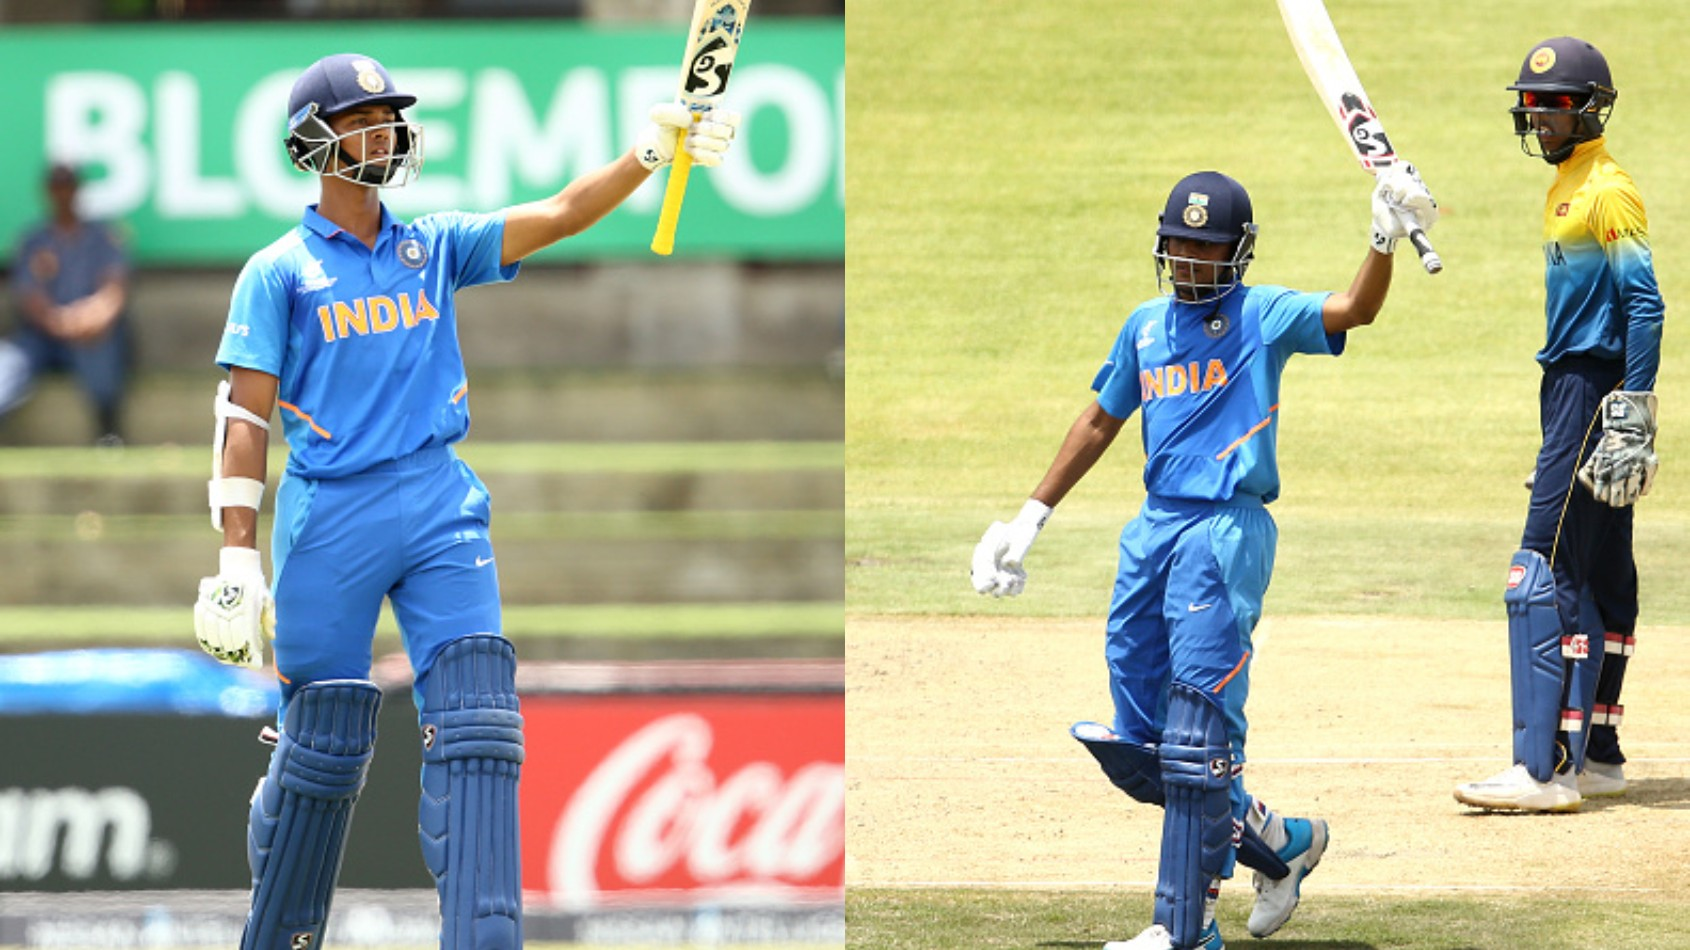 U19CWC 2020: Clinical India defeats Sri Lanka by 90 runs; Jaiswal and Garg shine with the bat